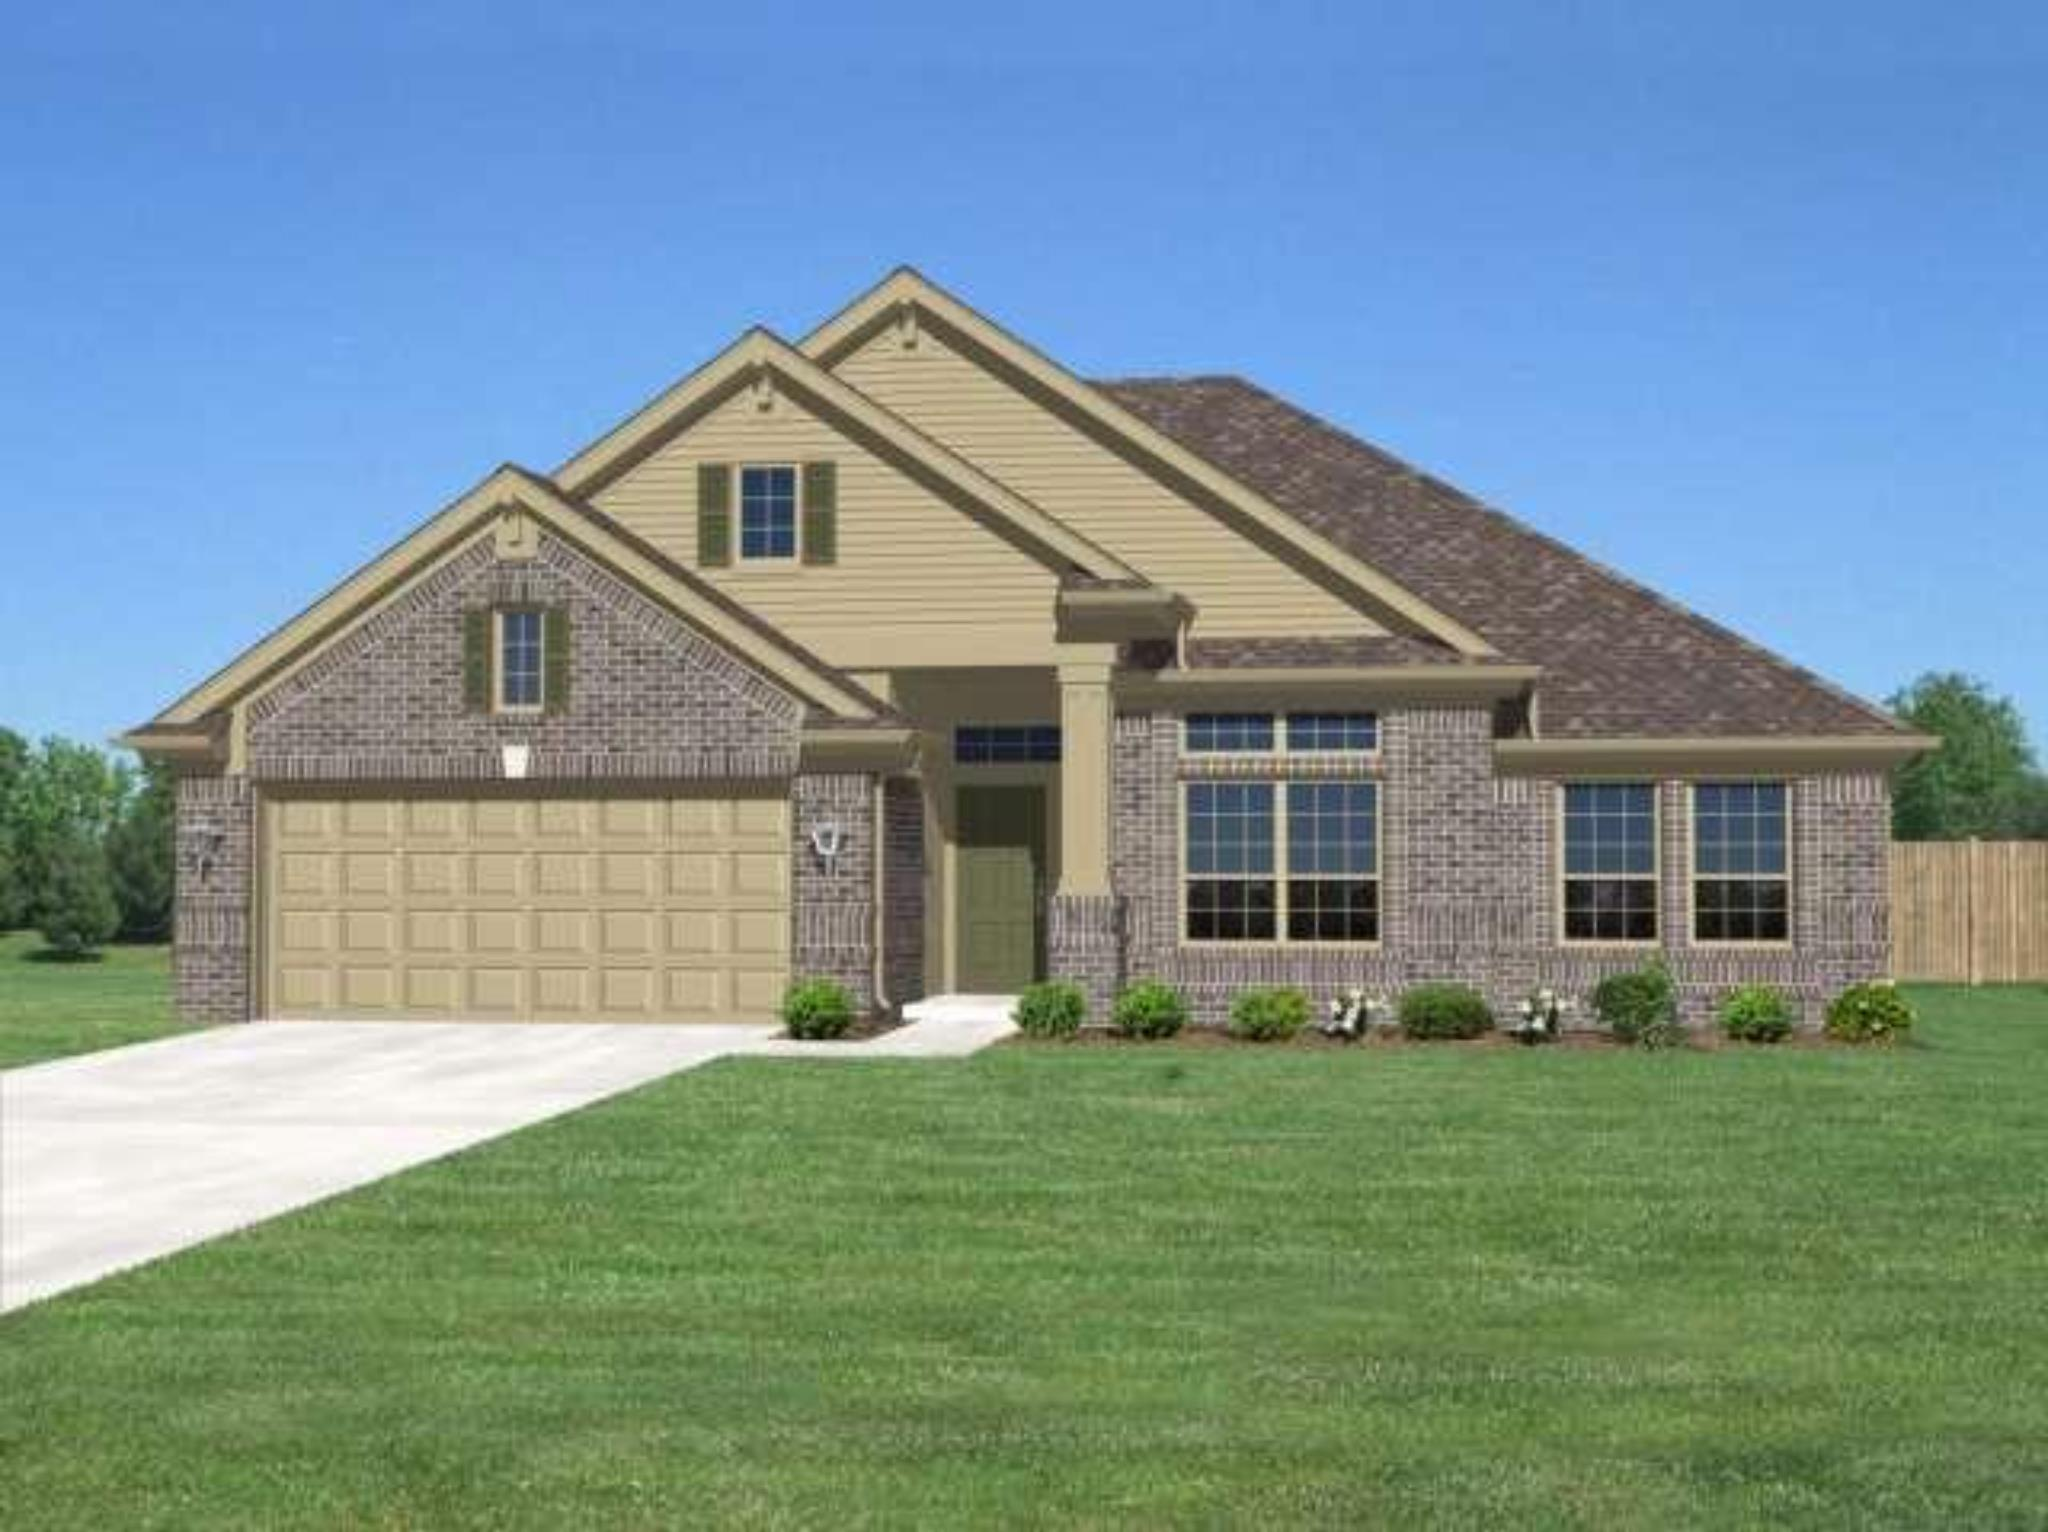 3907 painted bird lane home builders norman ok for Norman ok home builders